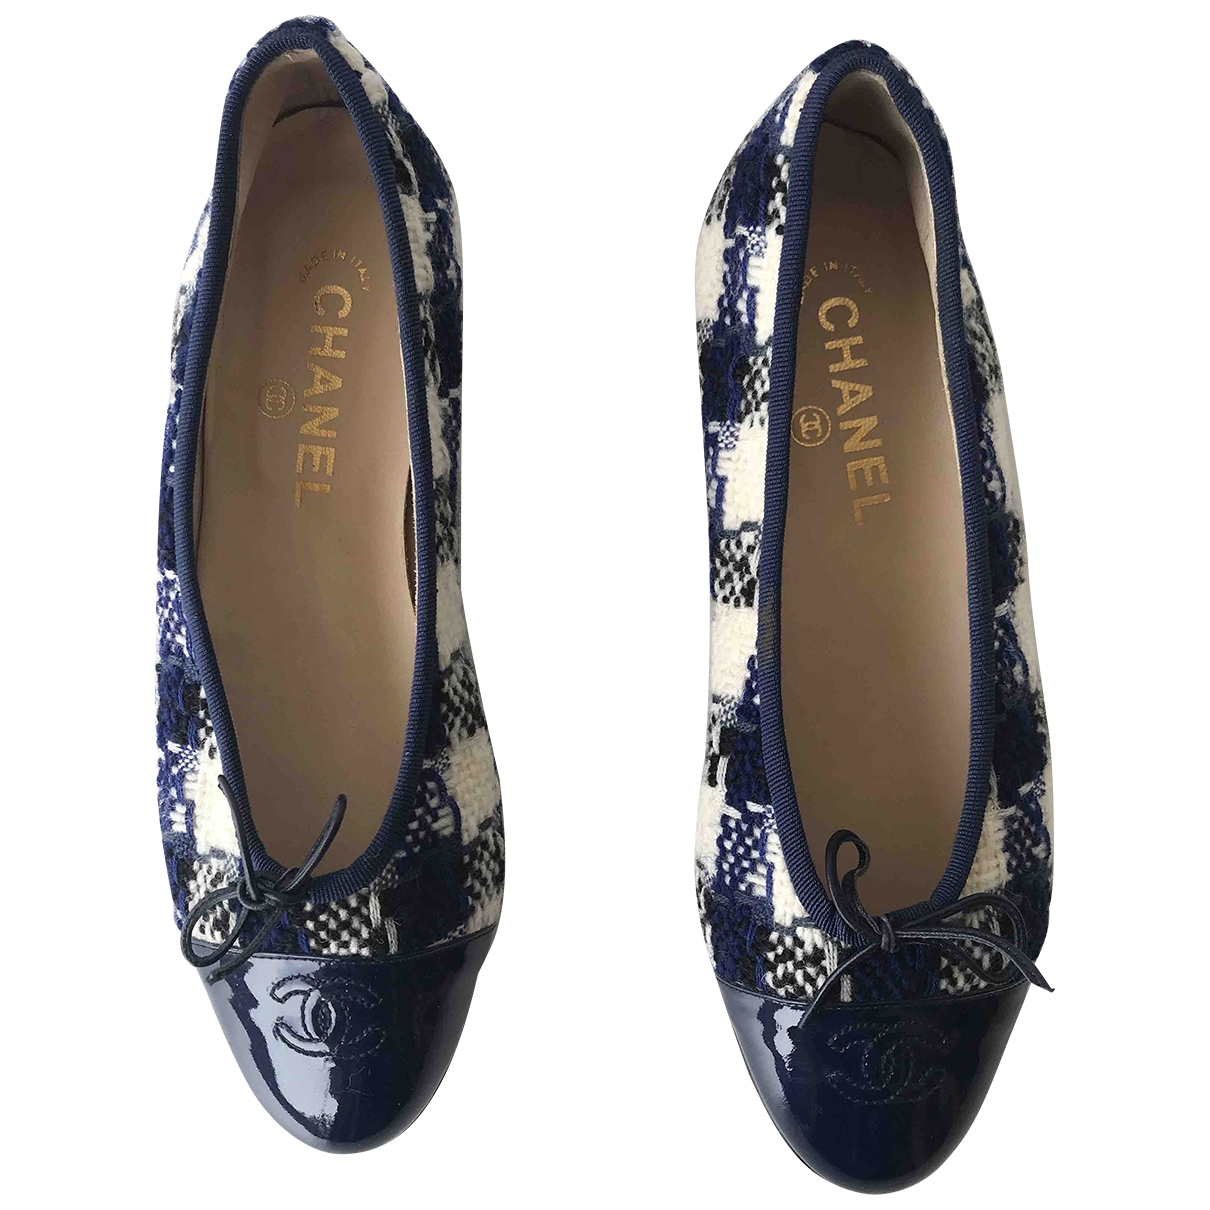 Chanel \N Ballerinas in  Blau Tweed